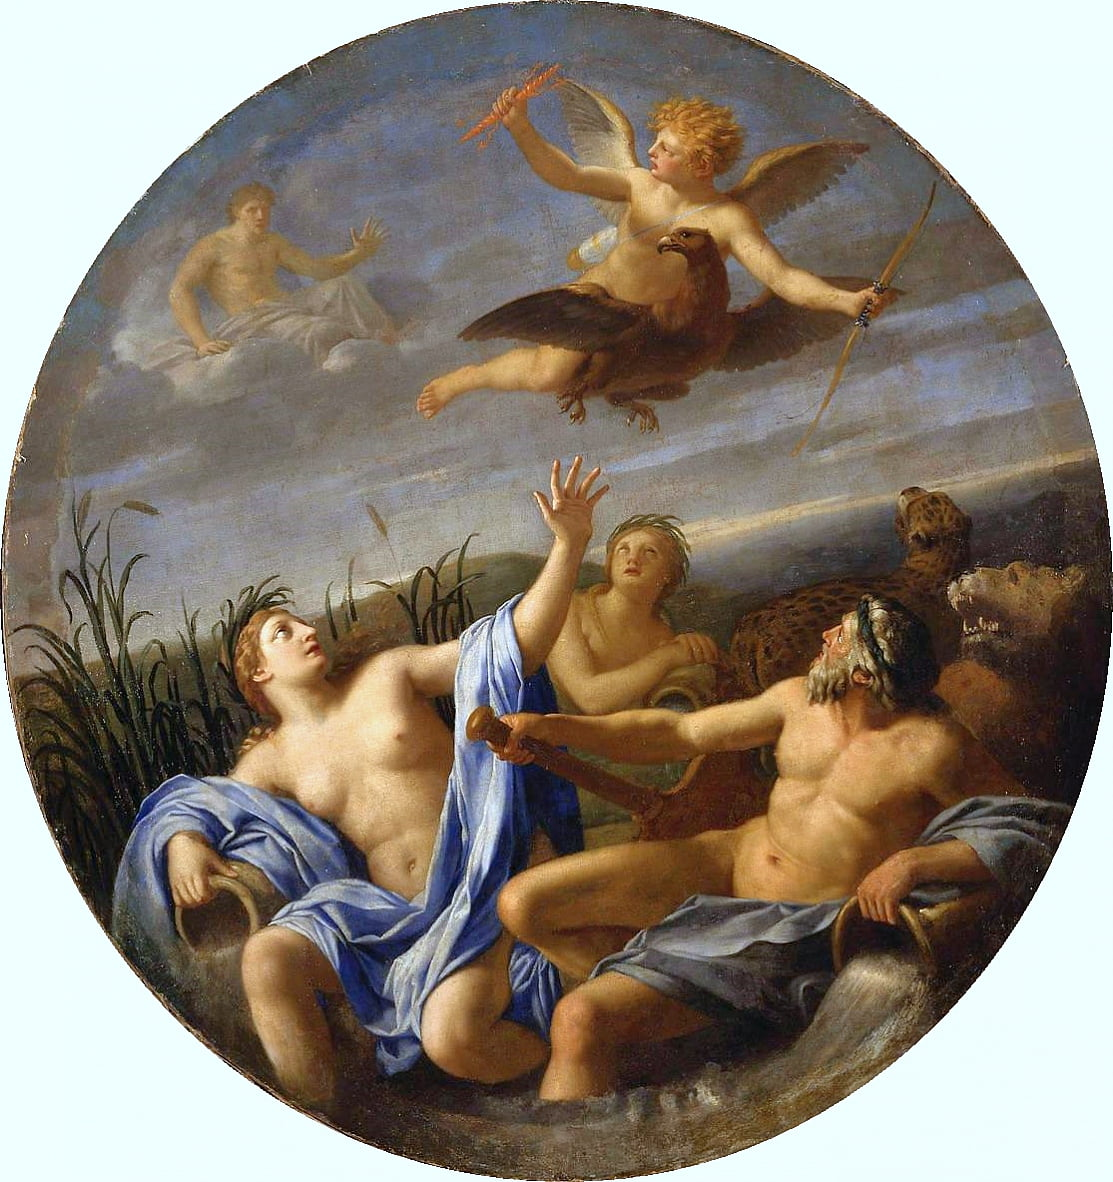 Life of Cupid - Cupid Stealing the Thunder of Jupitern by Eustache Le Sueur